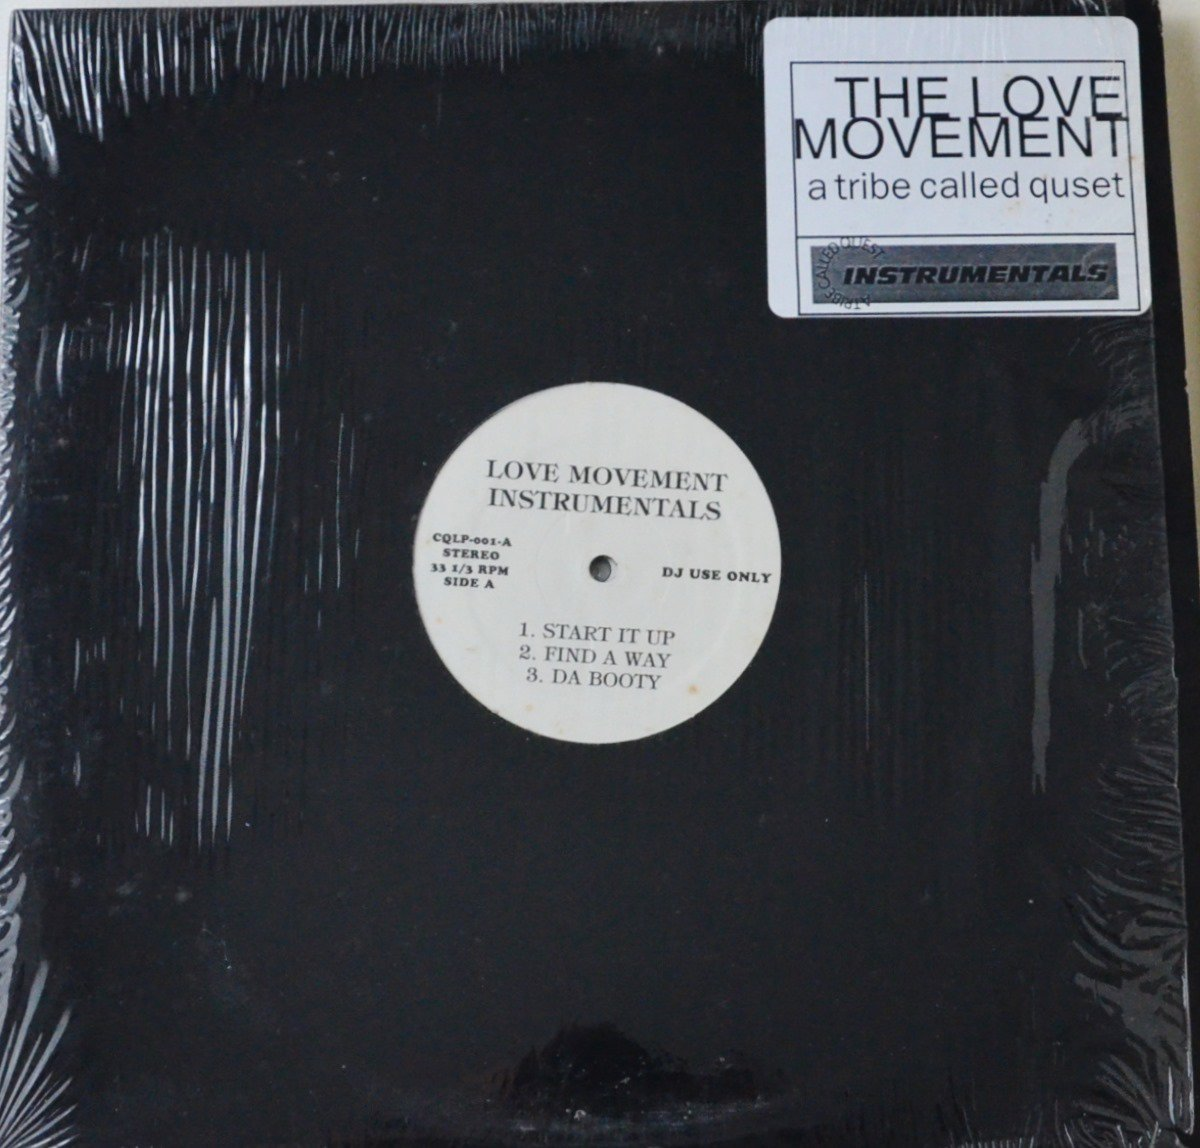 A TRIBE CALLED QUEST / LOVE MOVEMENT INSTRUMENTALS (2LP)